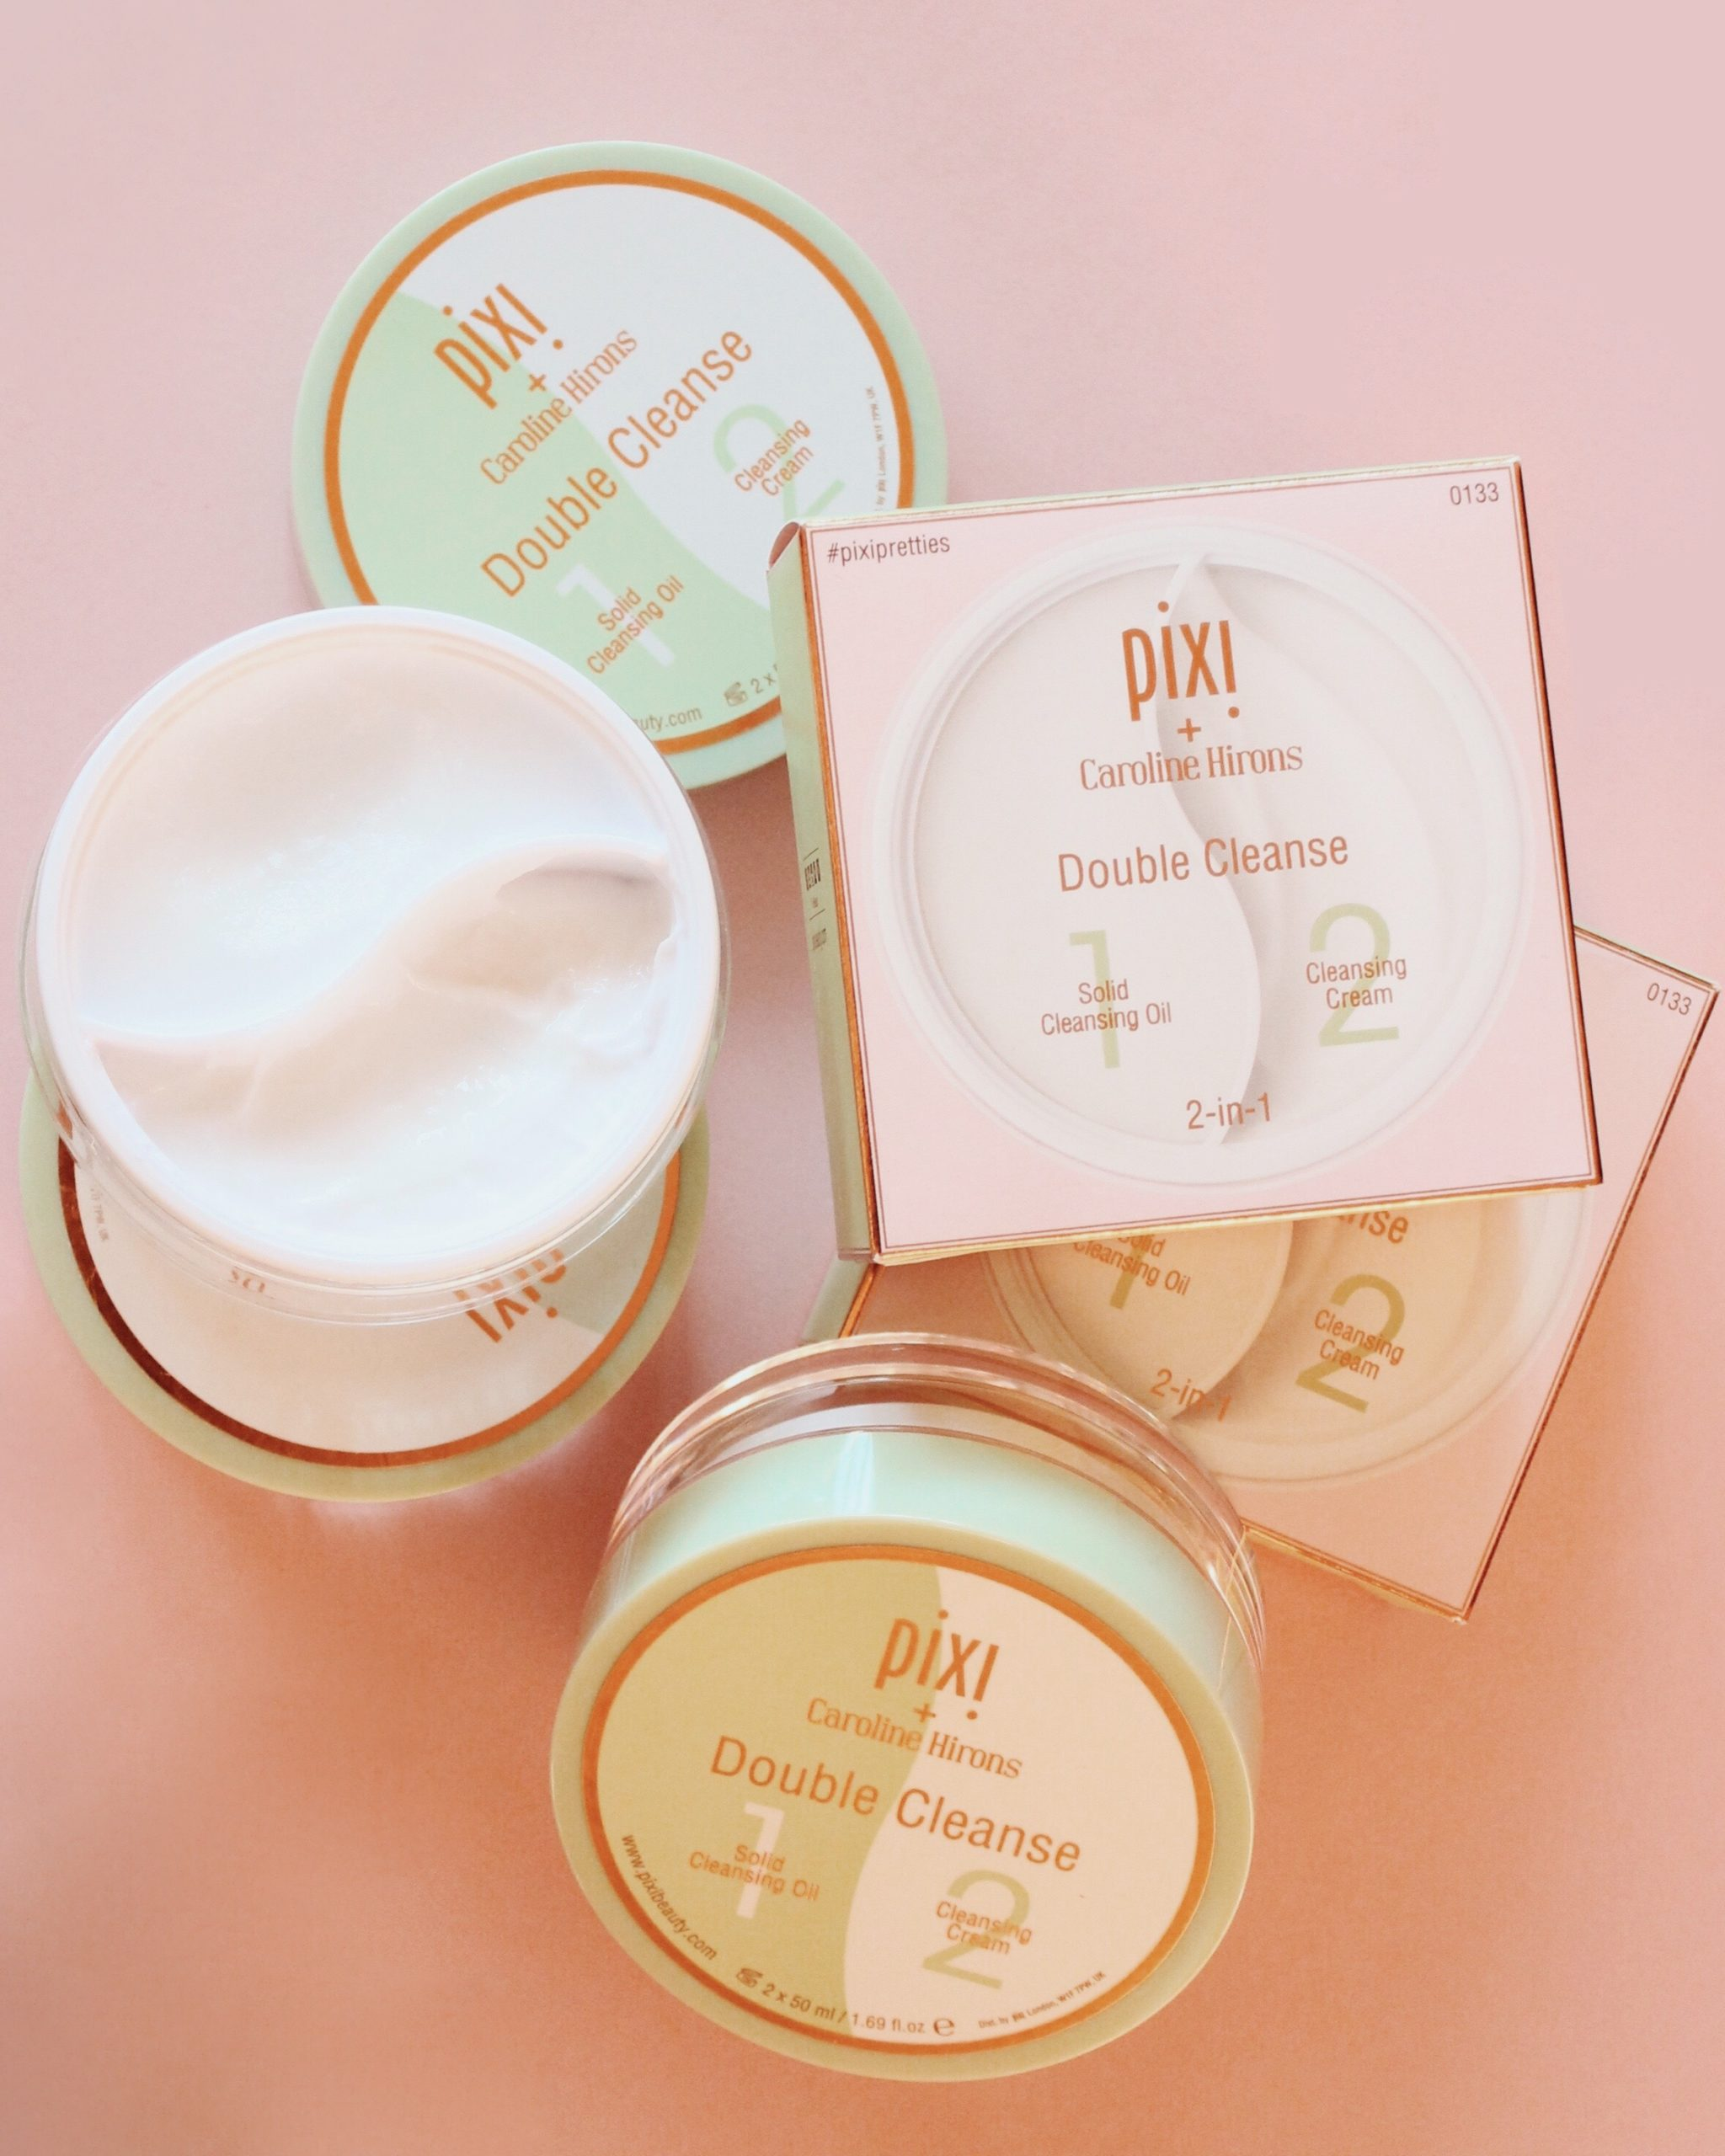 Pixi Beauty Vegan Skincare Product List (2020)